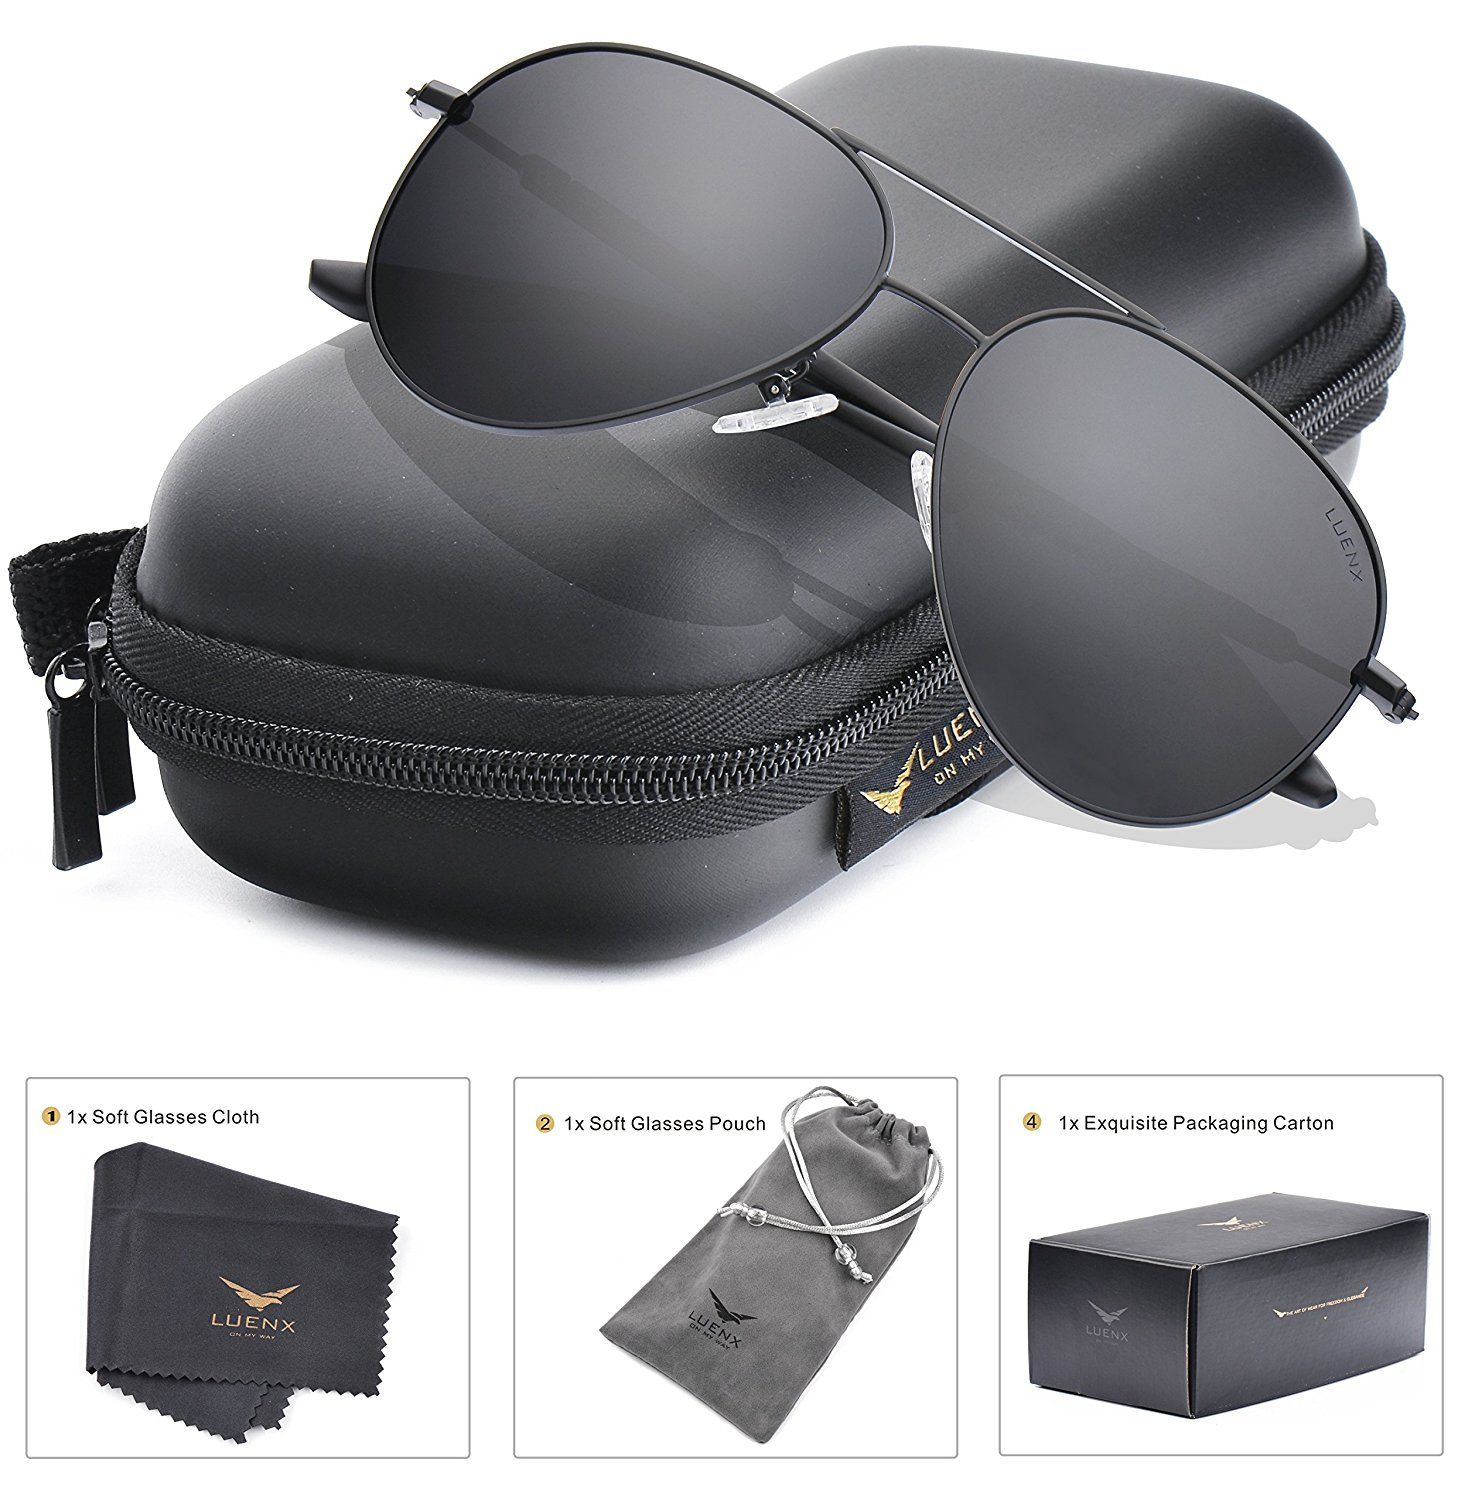 4295c3a3b347 LUENX Aviator Sunglasses Polarized for Men Women with Sun Glasses Case -  ... New  LUENX